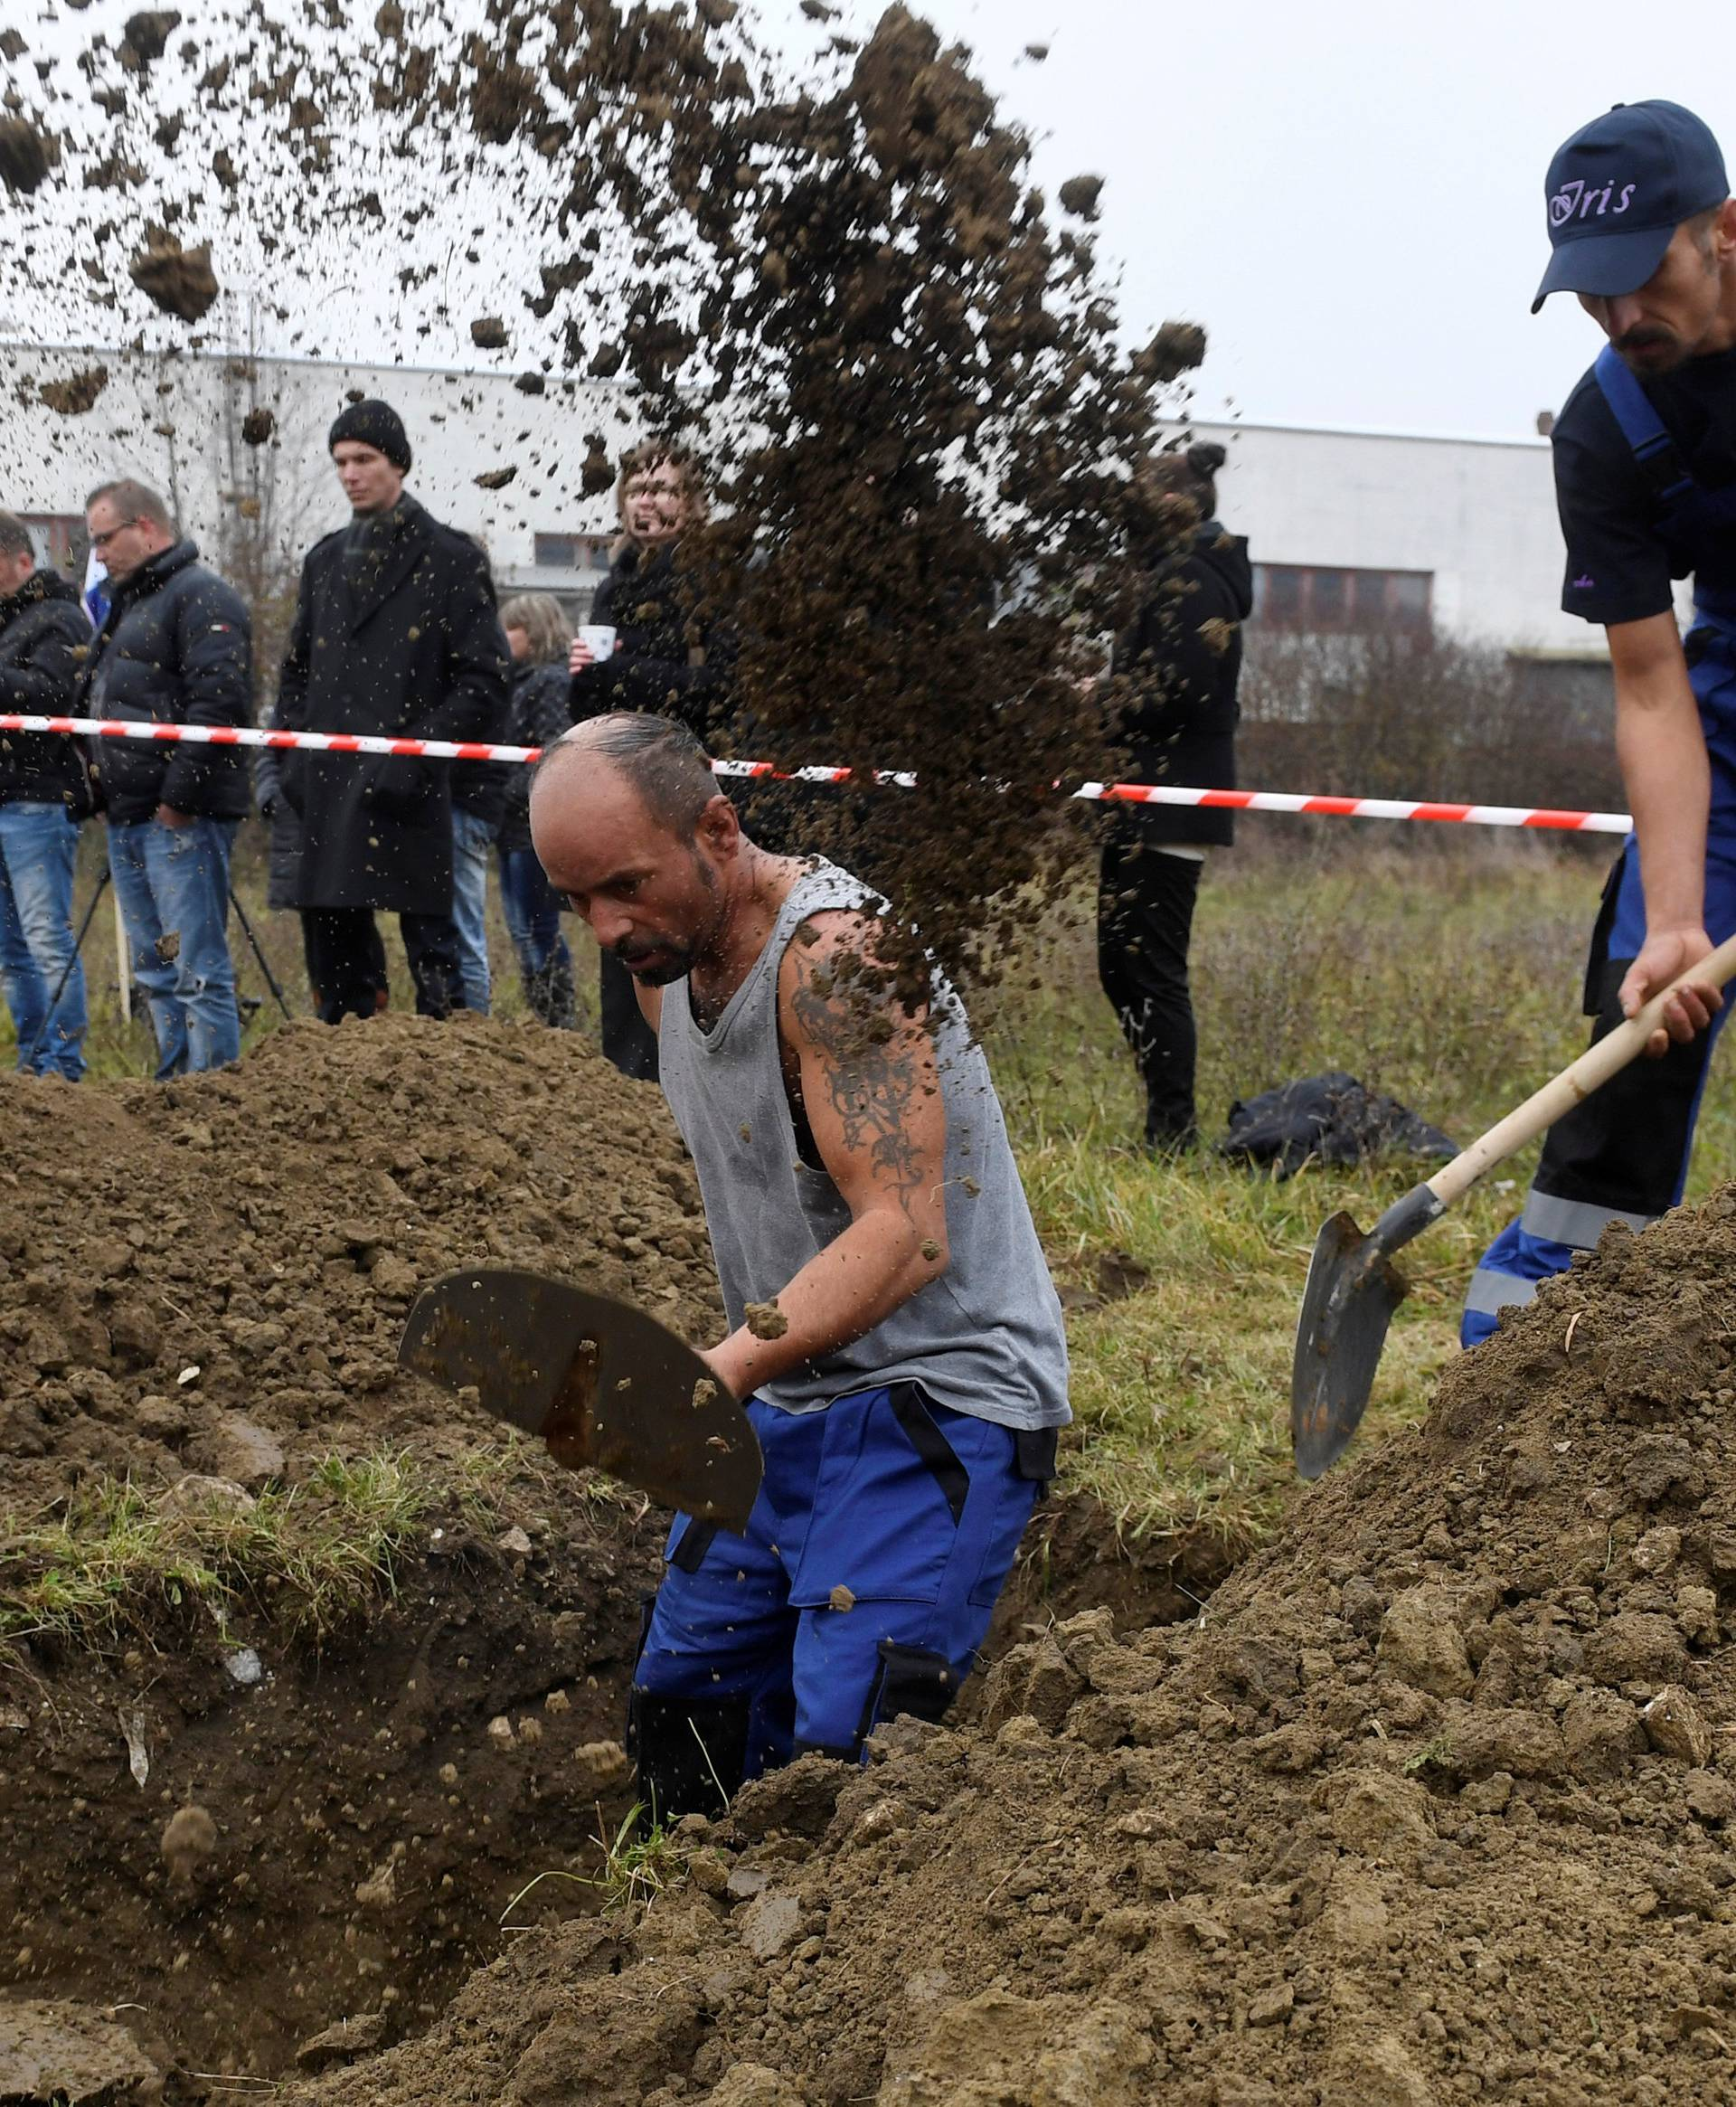 Gravediggers compete during a grave digging championship in Trencin, Slovakia